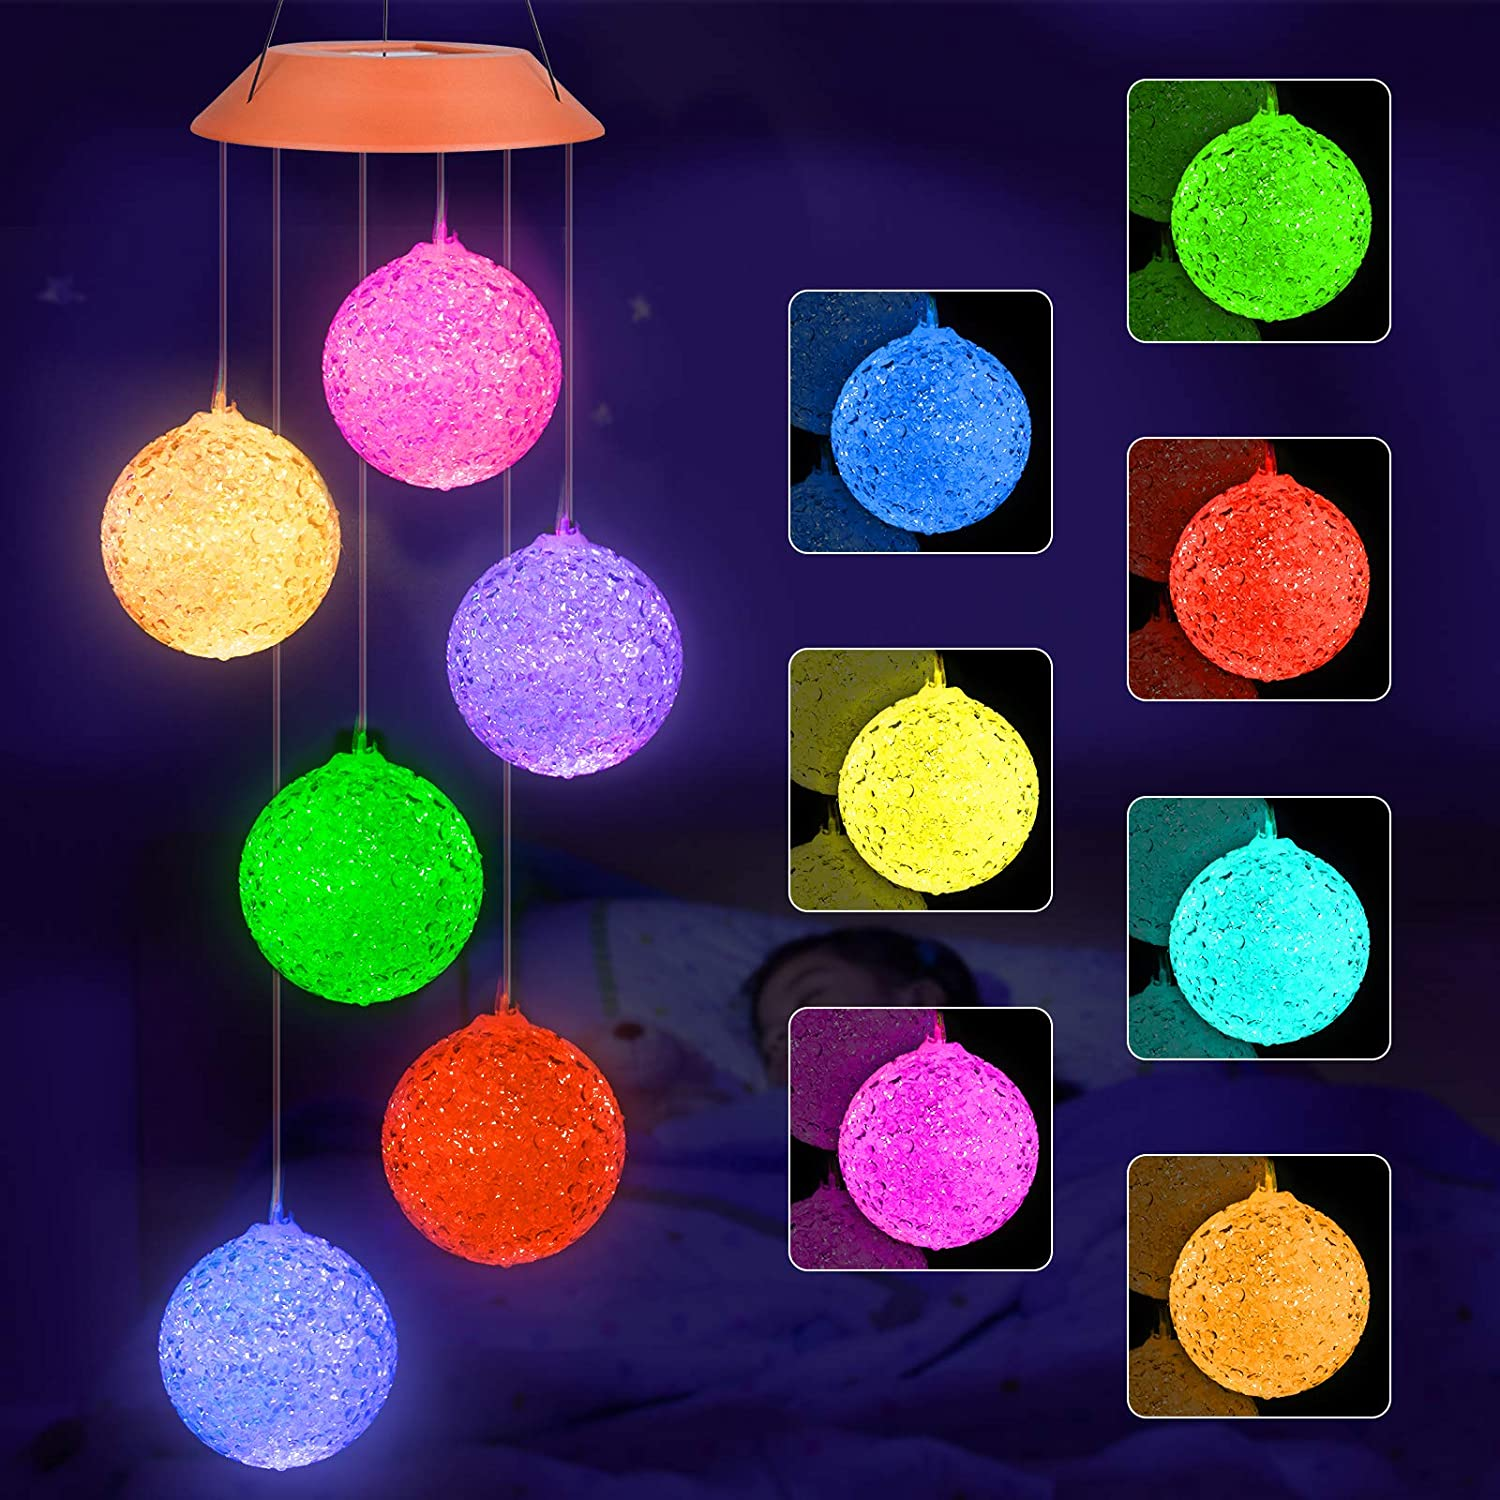 Ninonly Solar Led Crystal Ball Wind Chime, Automatic Light Changing Color Mobile Hanging Wind Chime for Patio Yard Home Garden Night Decoration